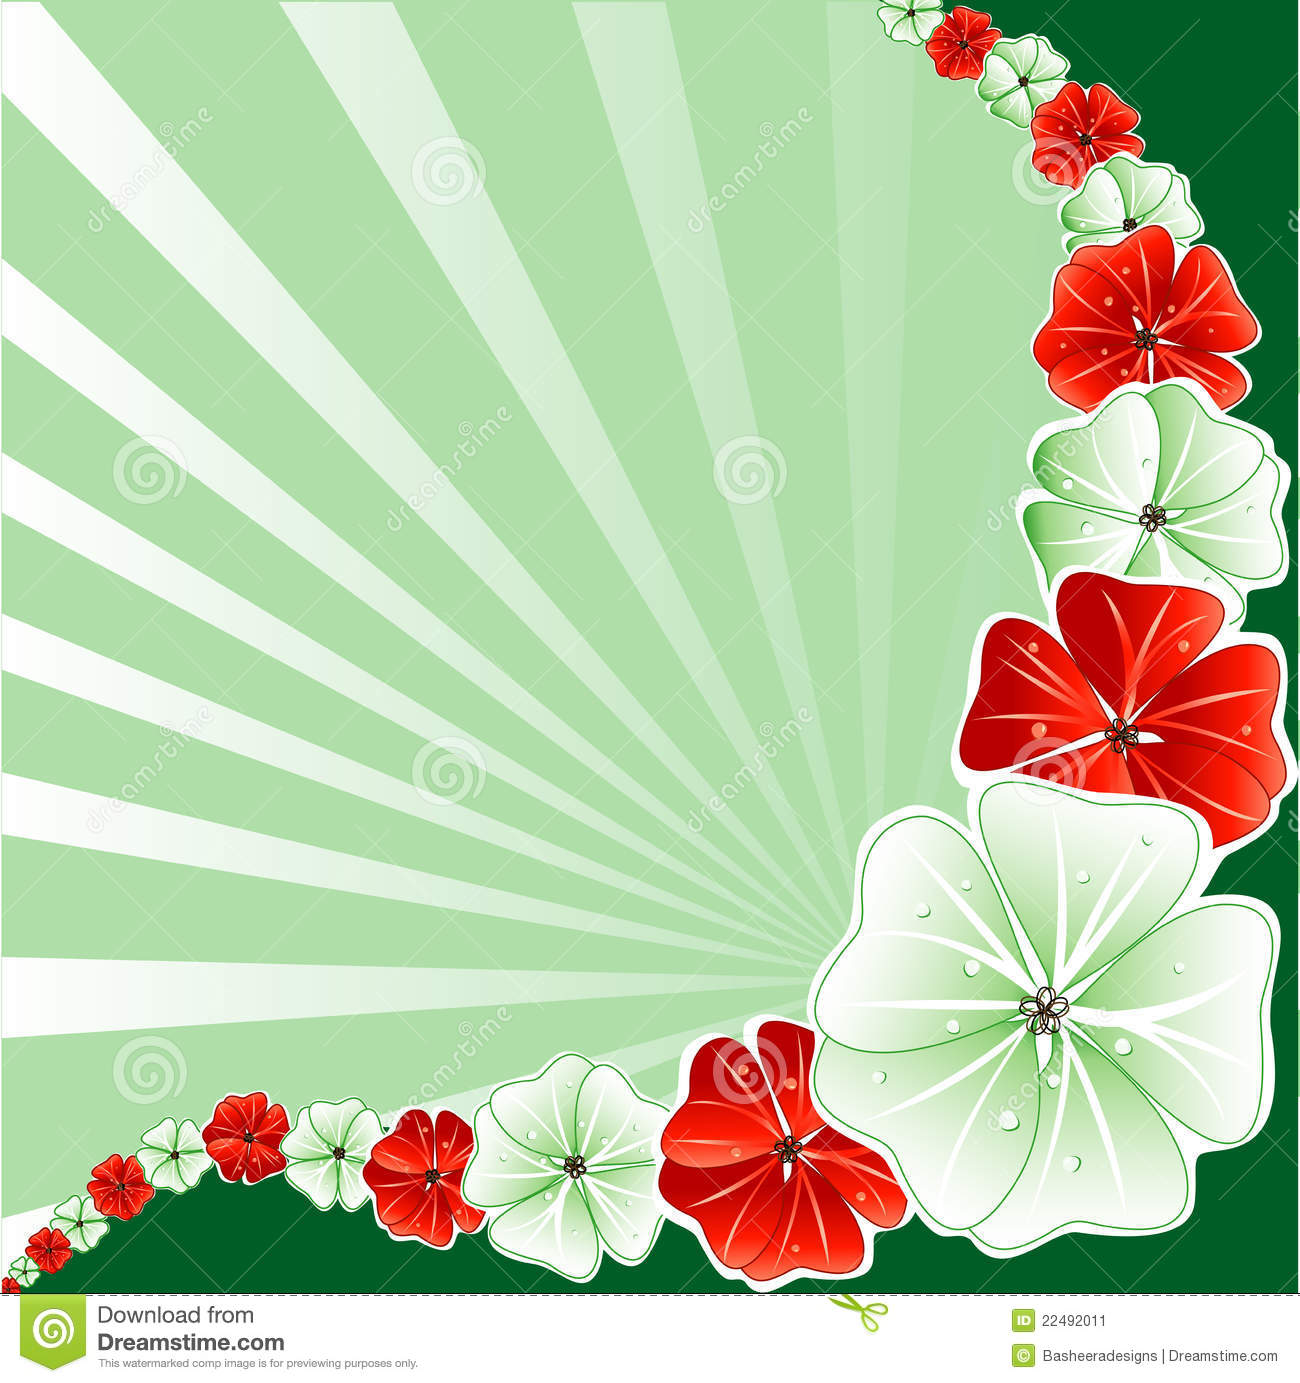 floral christmas background 3 - Christmas In Hawaiian